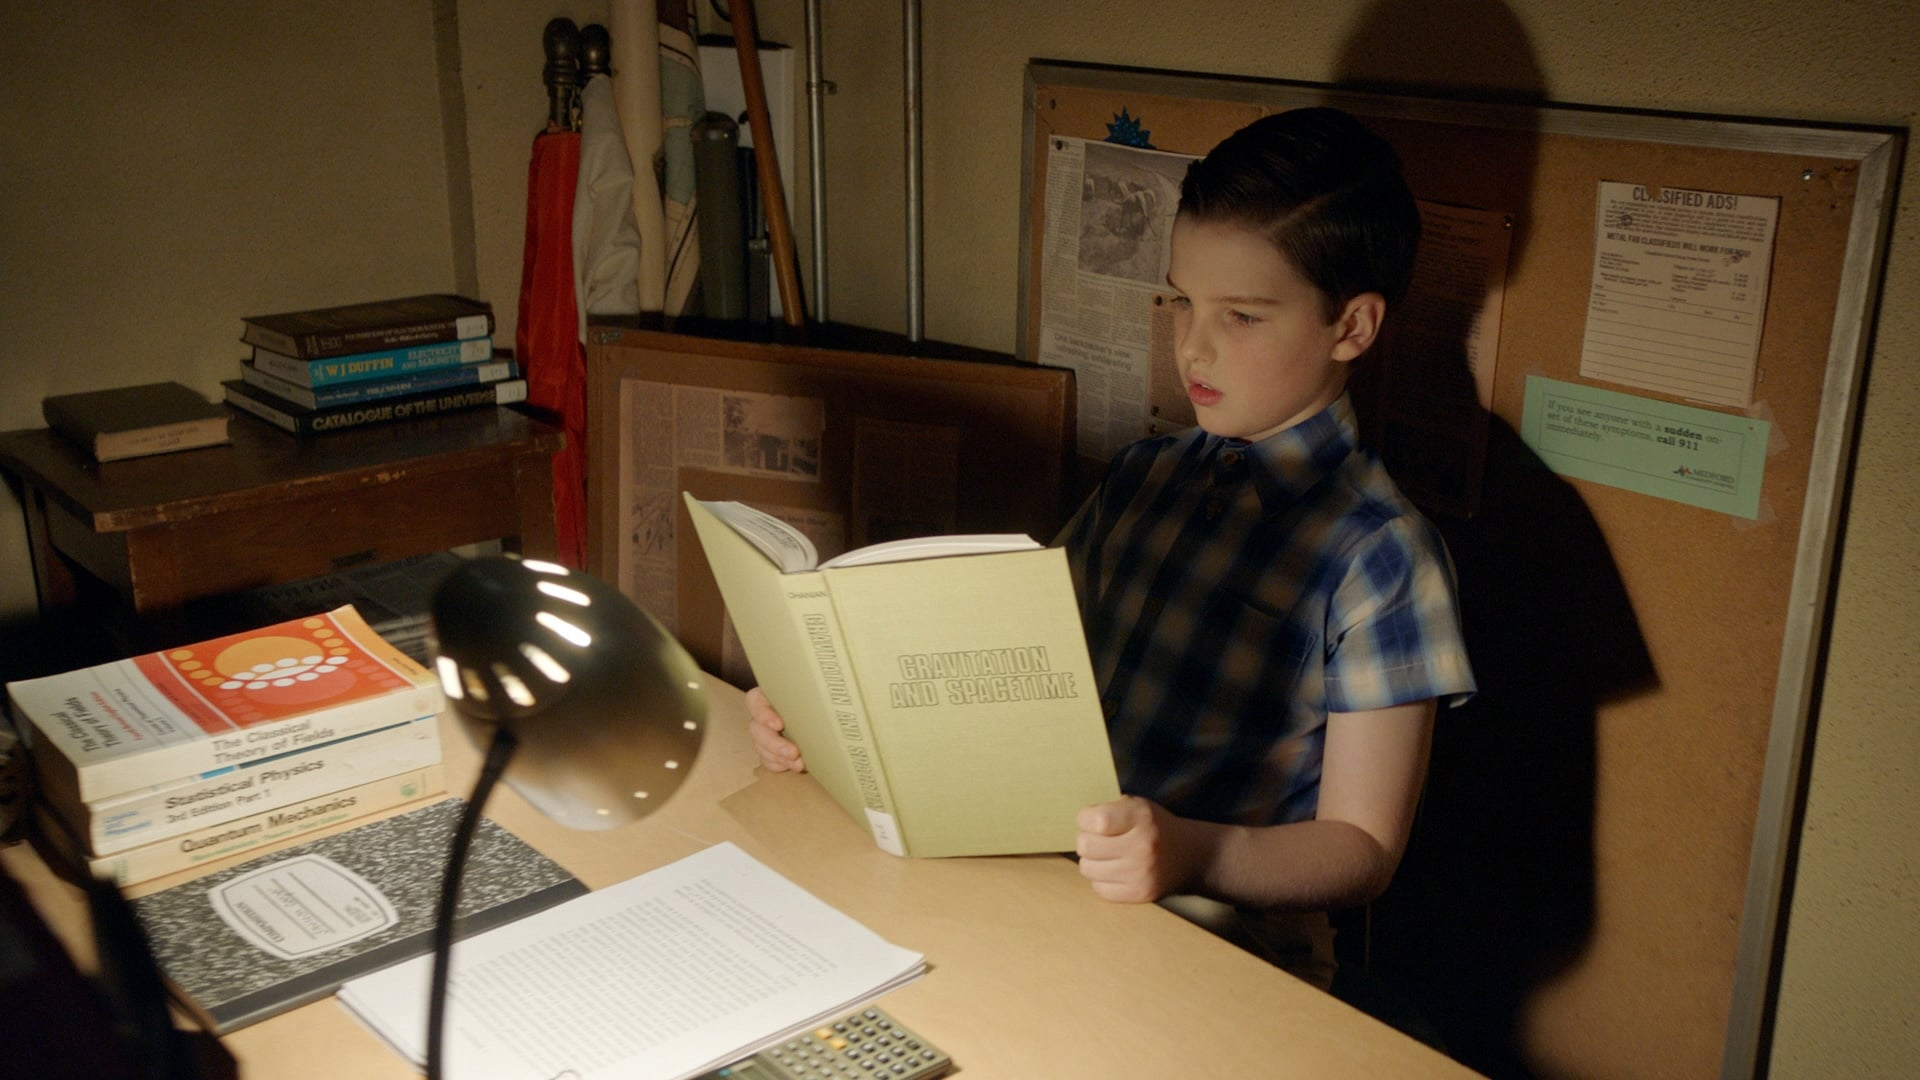 Young Sheldon - Season 3 Episode 2 : A Broom Closet and Satan's Monopoly Board